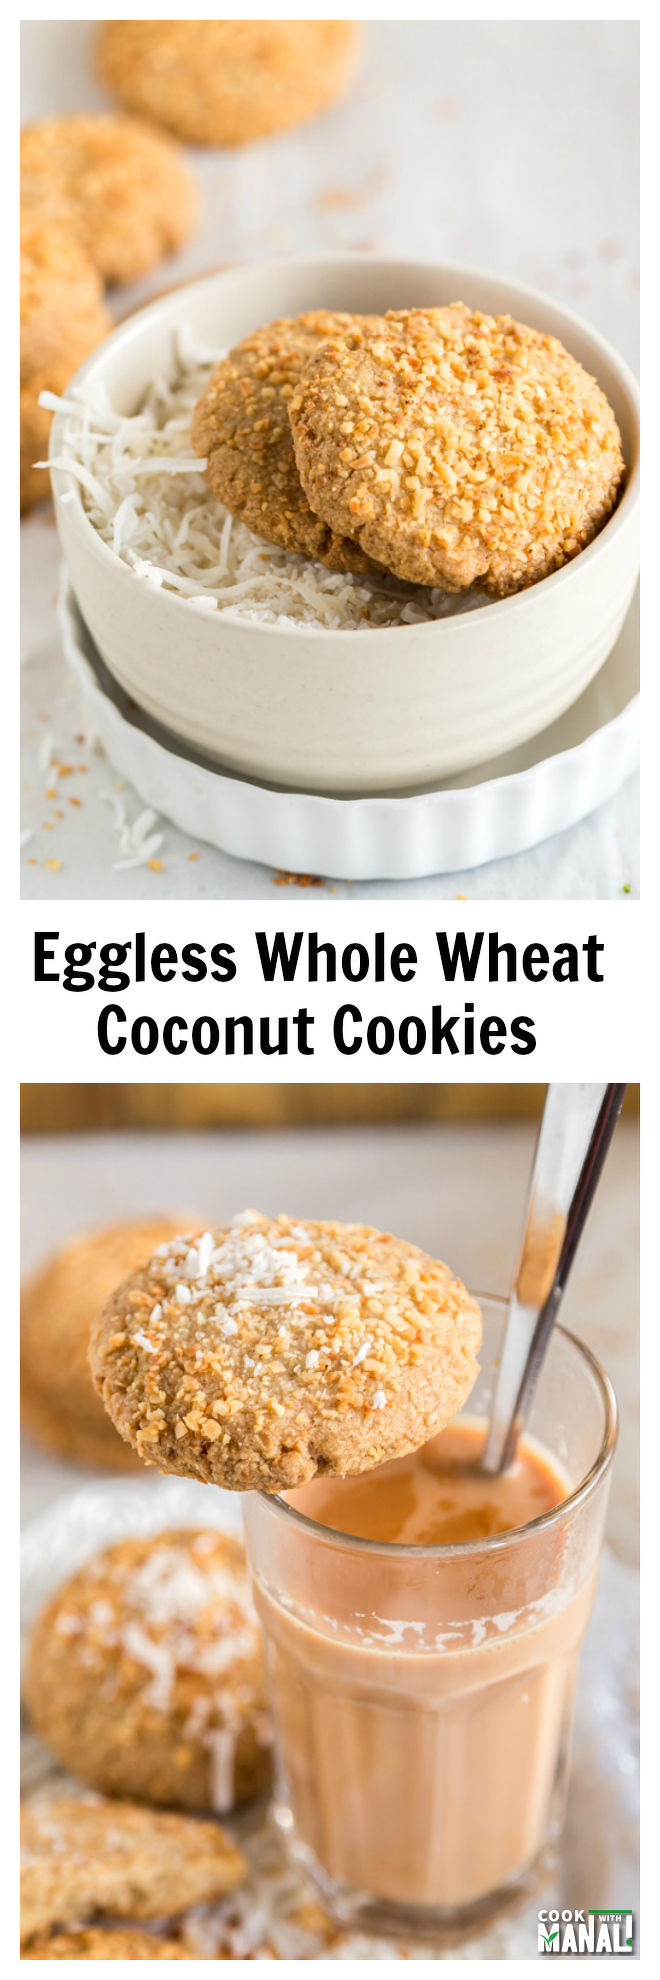 Eggless Coconut Cookies Collage